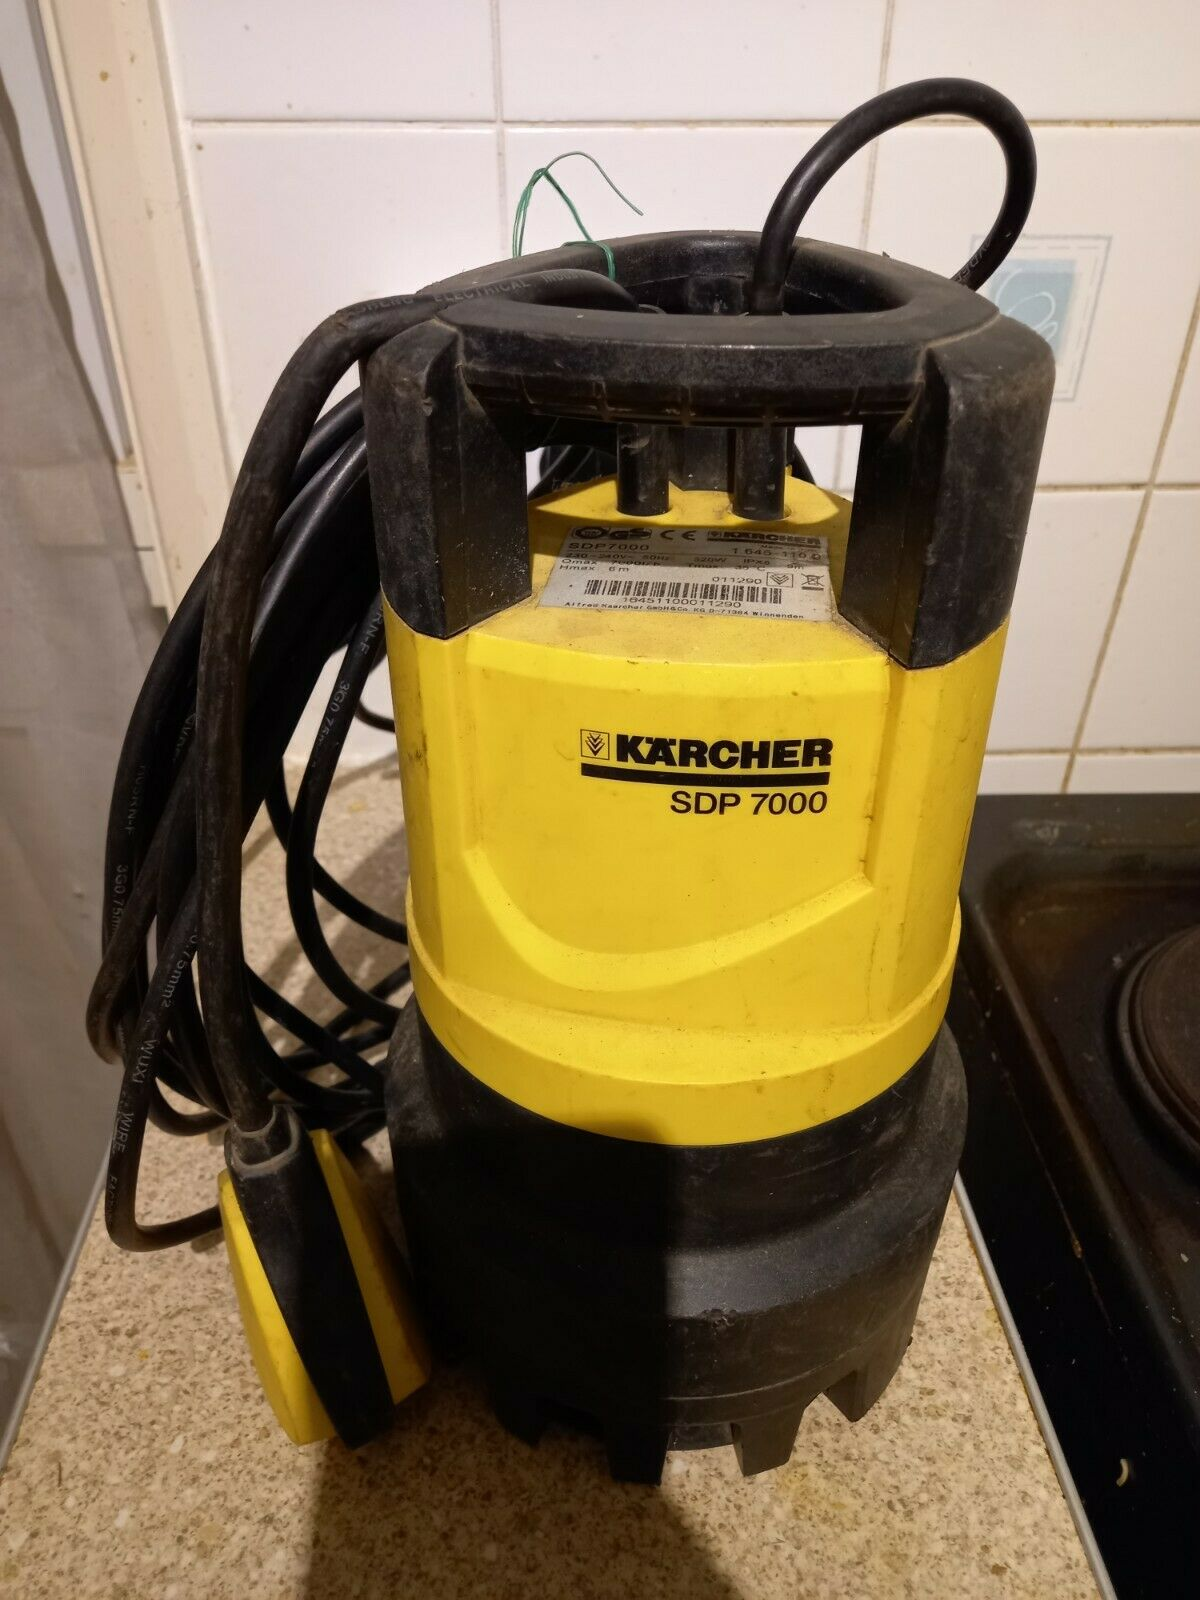 Kärcher SDP 7000 Submersible Water Pump. Great working condition